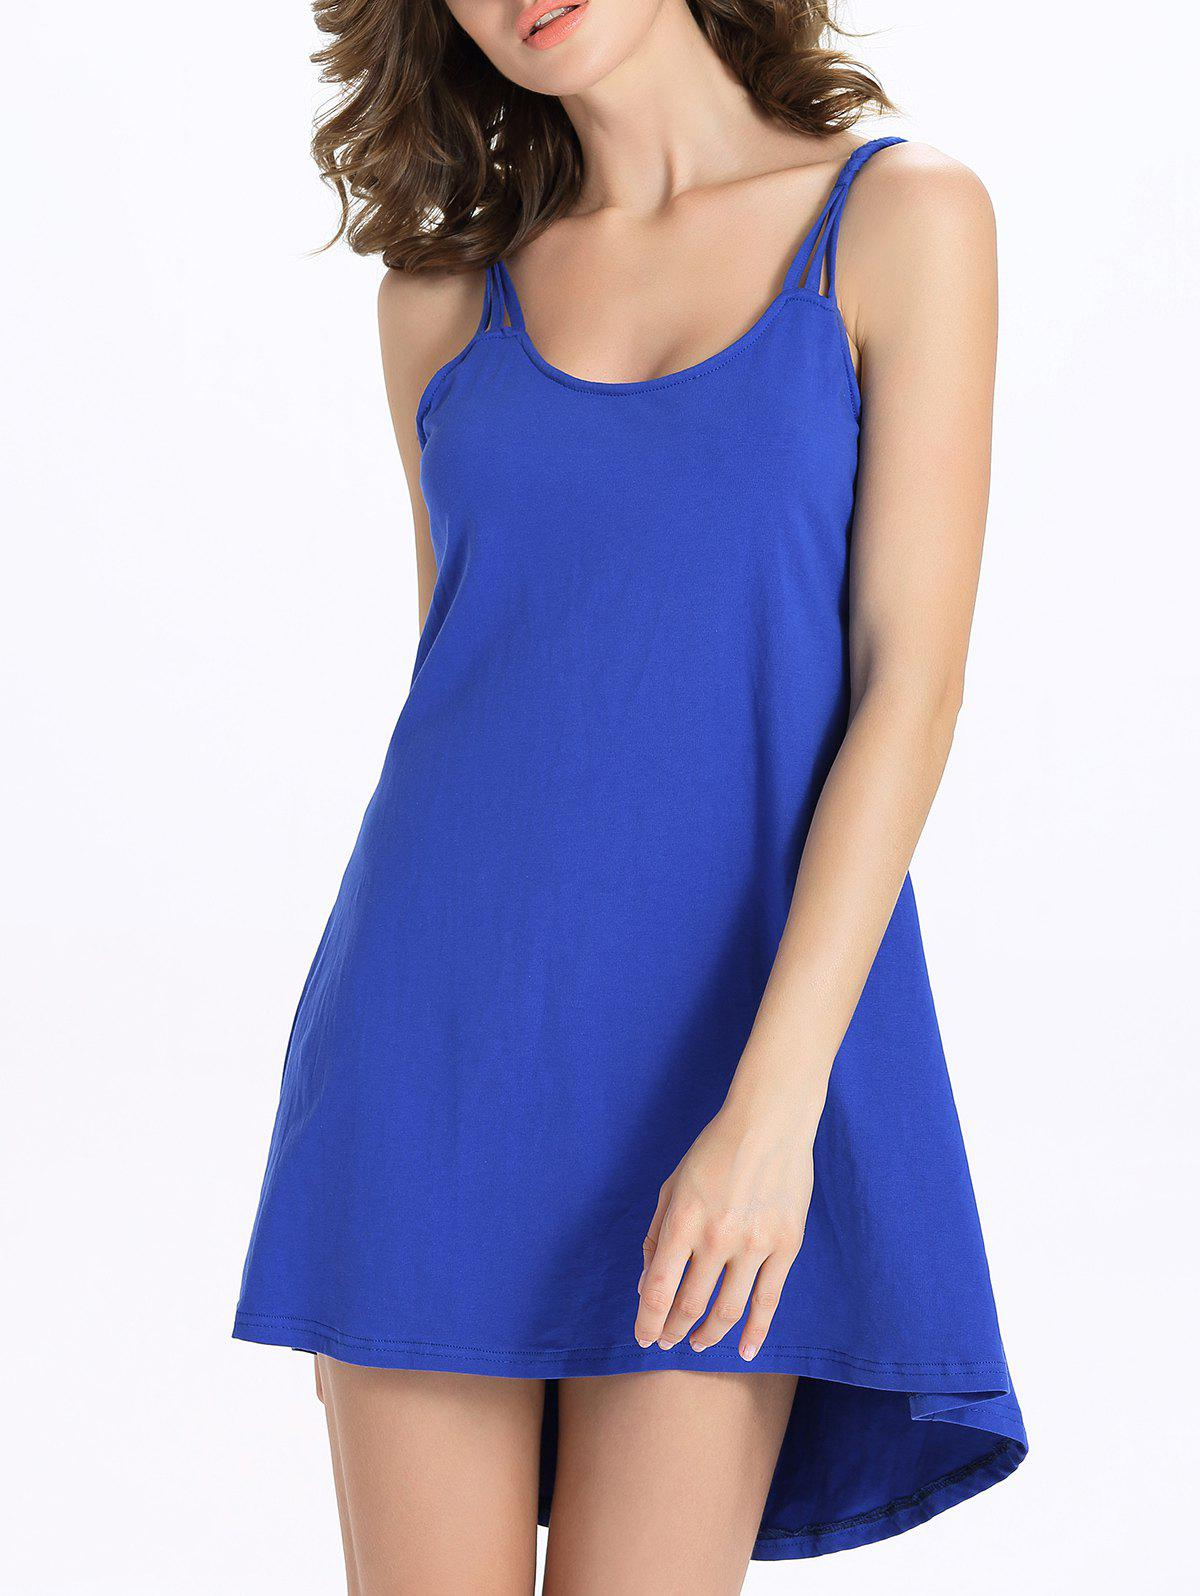 Stylish Candy Color Scoop Neck Tank Dress For Women